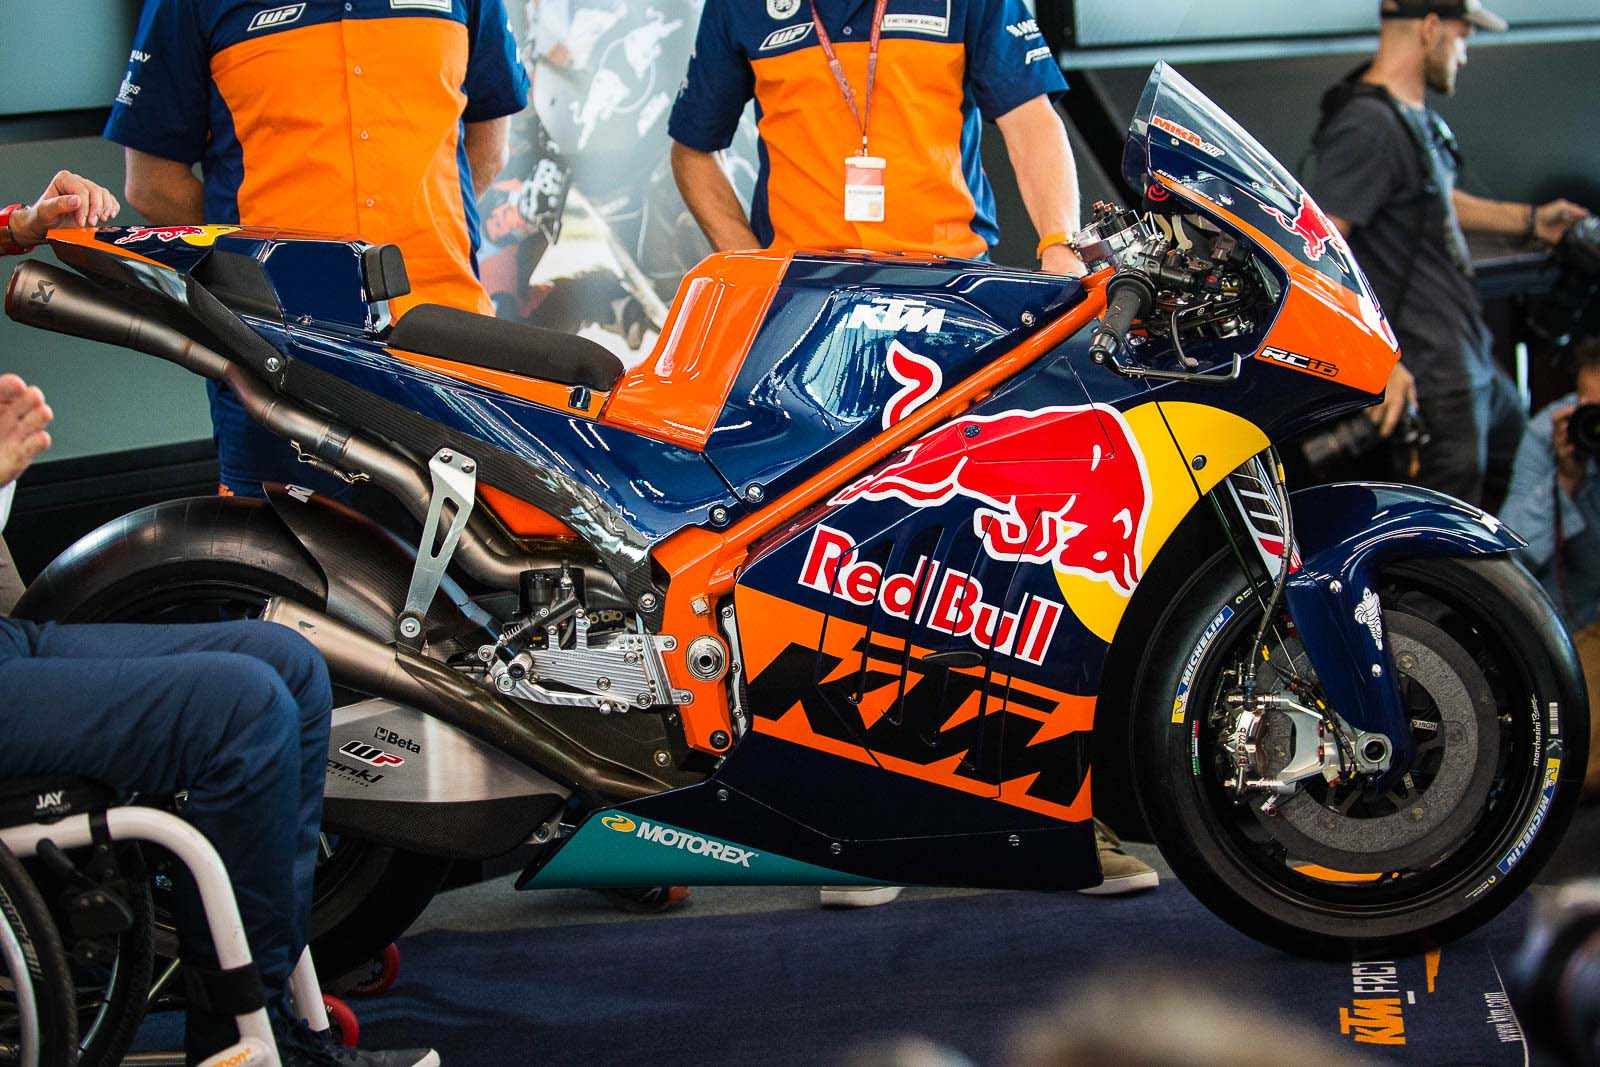 Analyzing the KTM RC16 MotoGP Bike